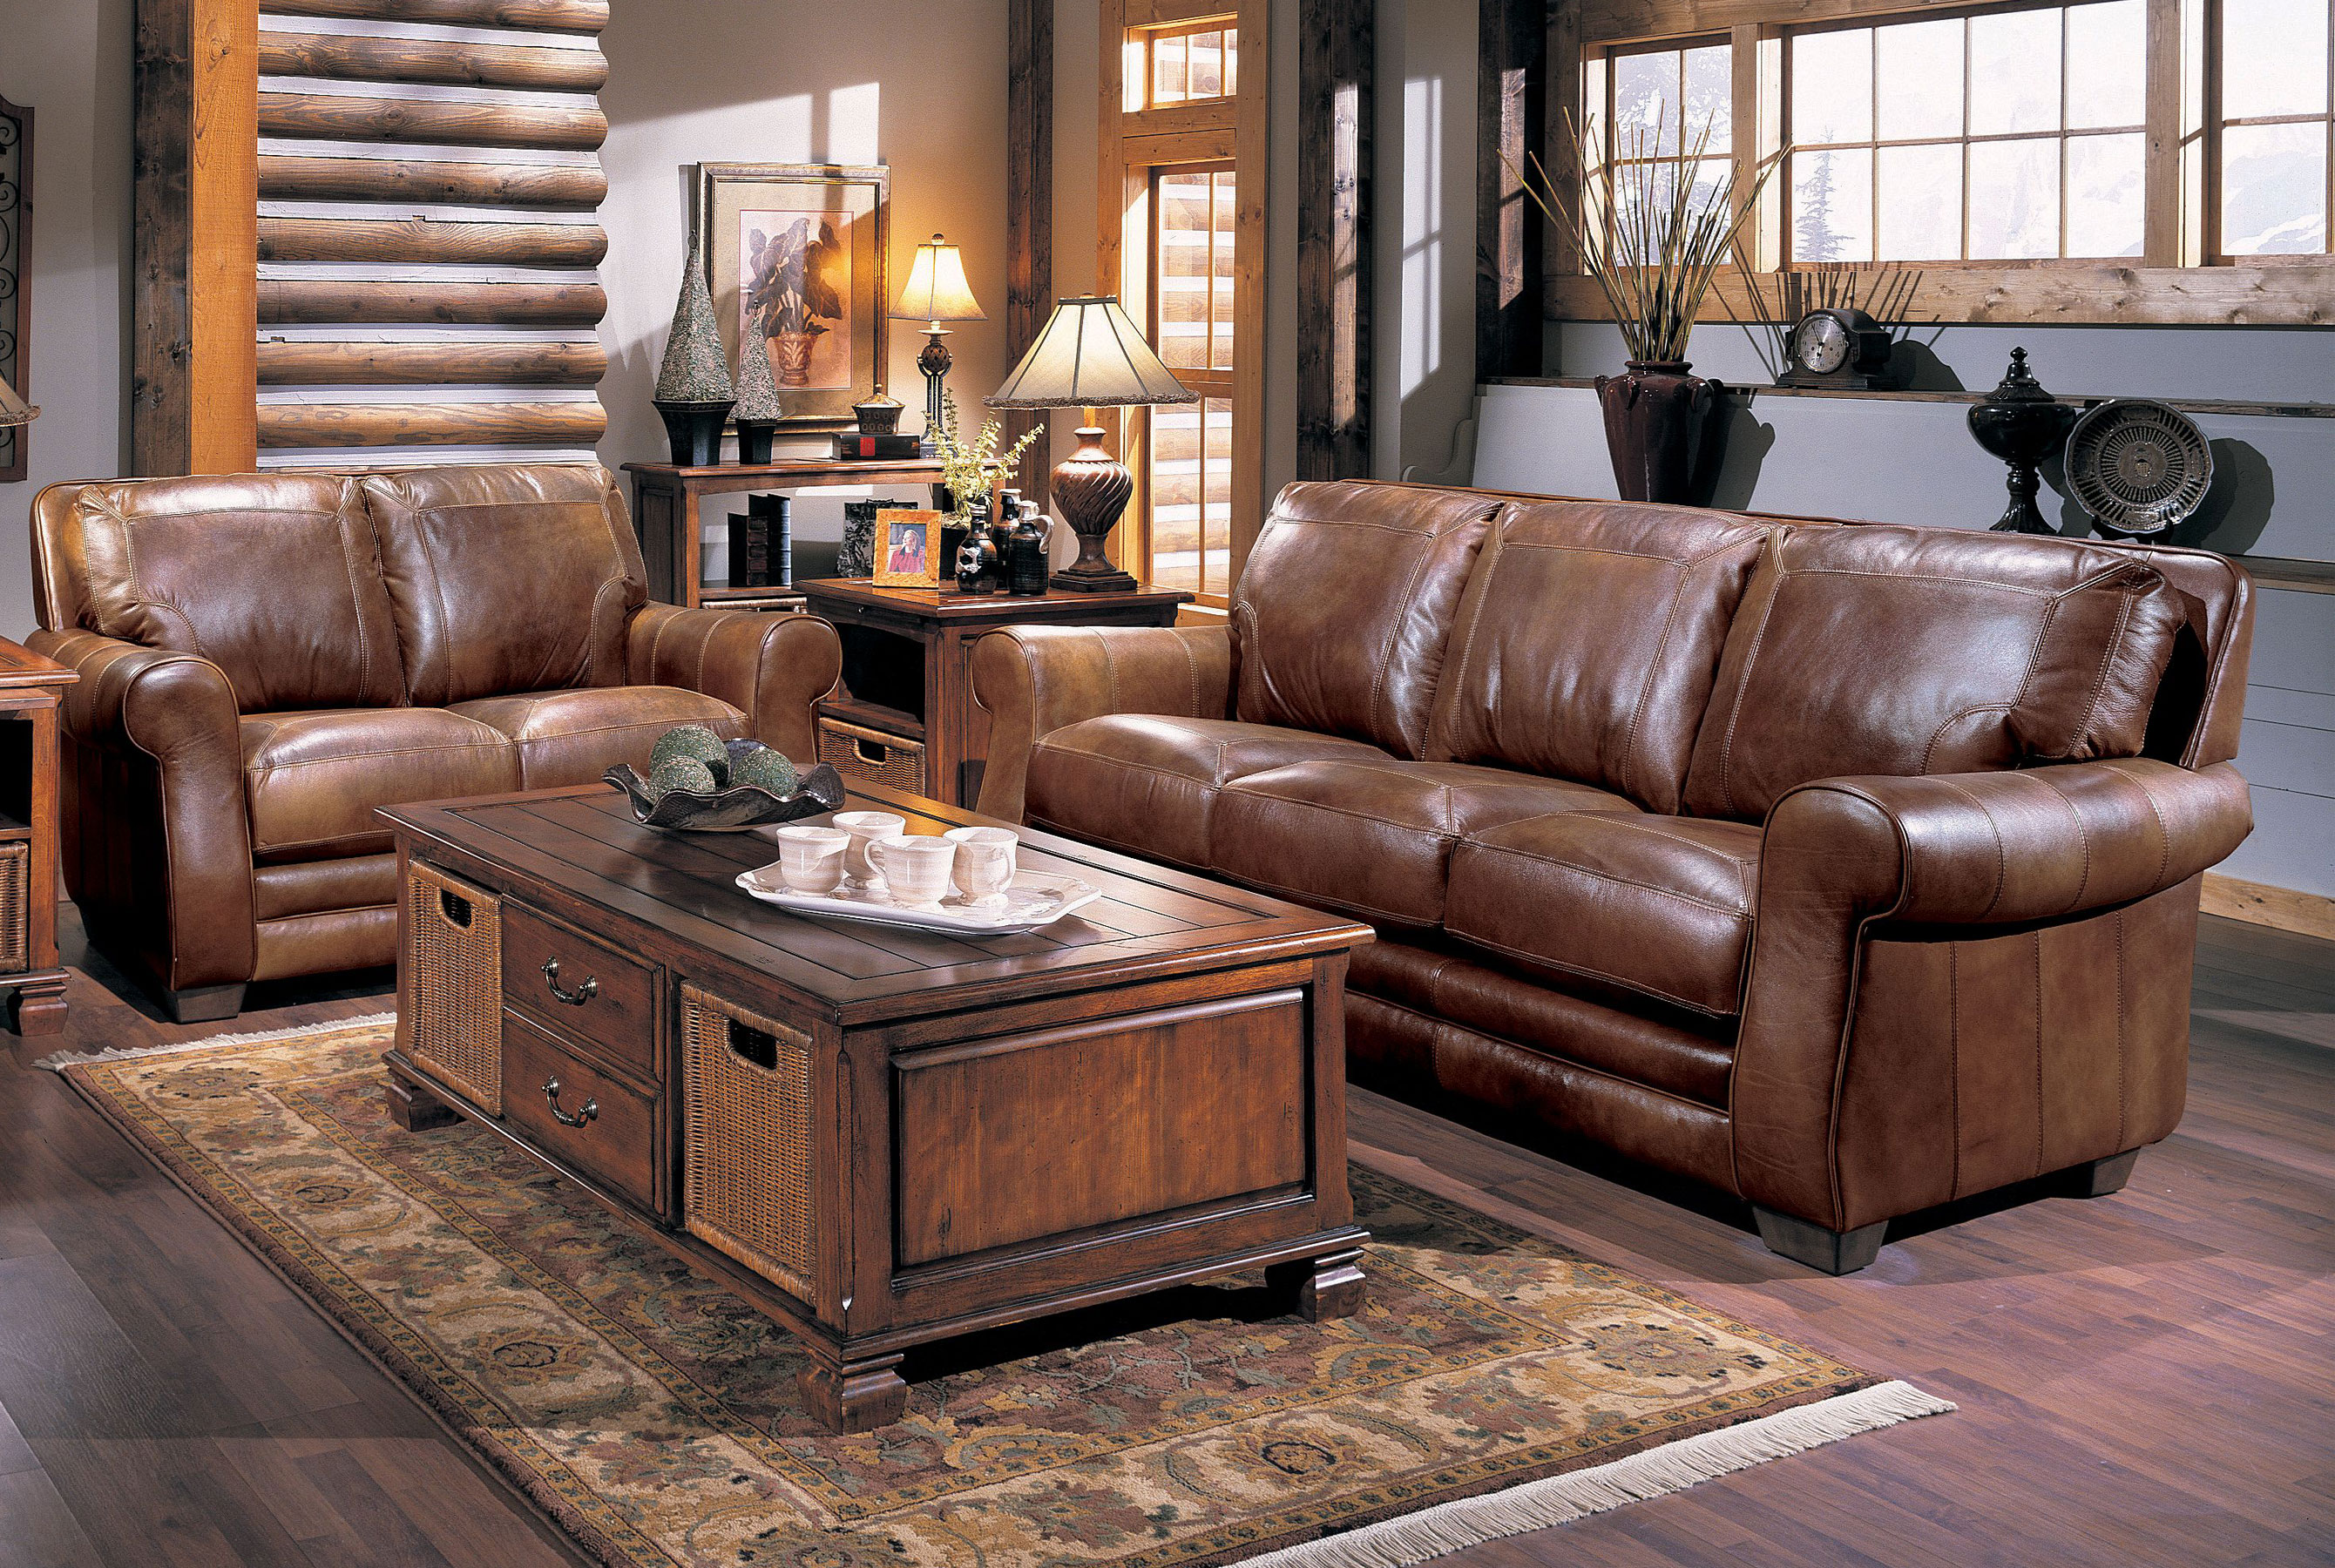 Bowden 84 Leather 548 Sofa Sofas And